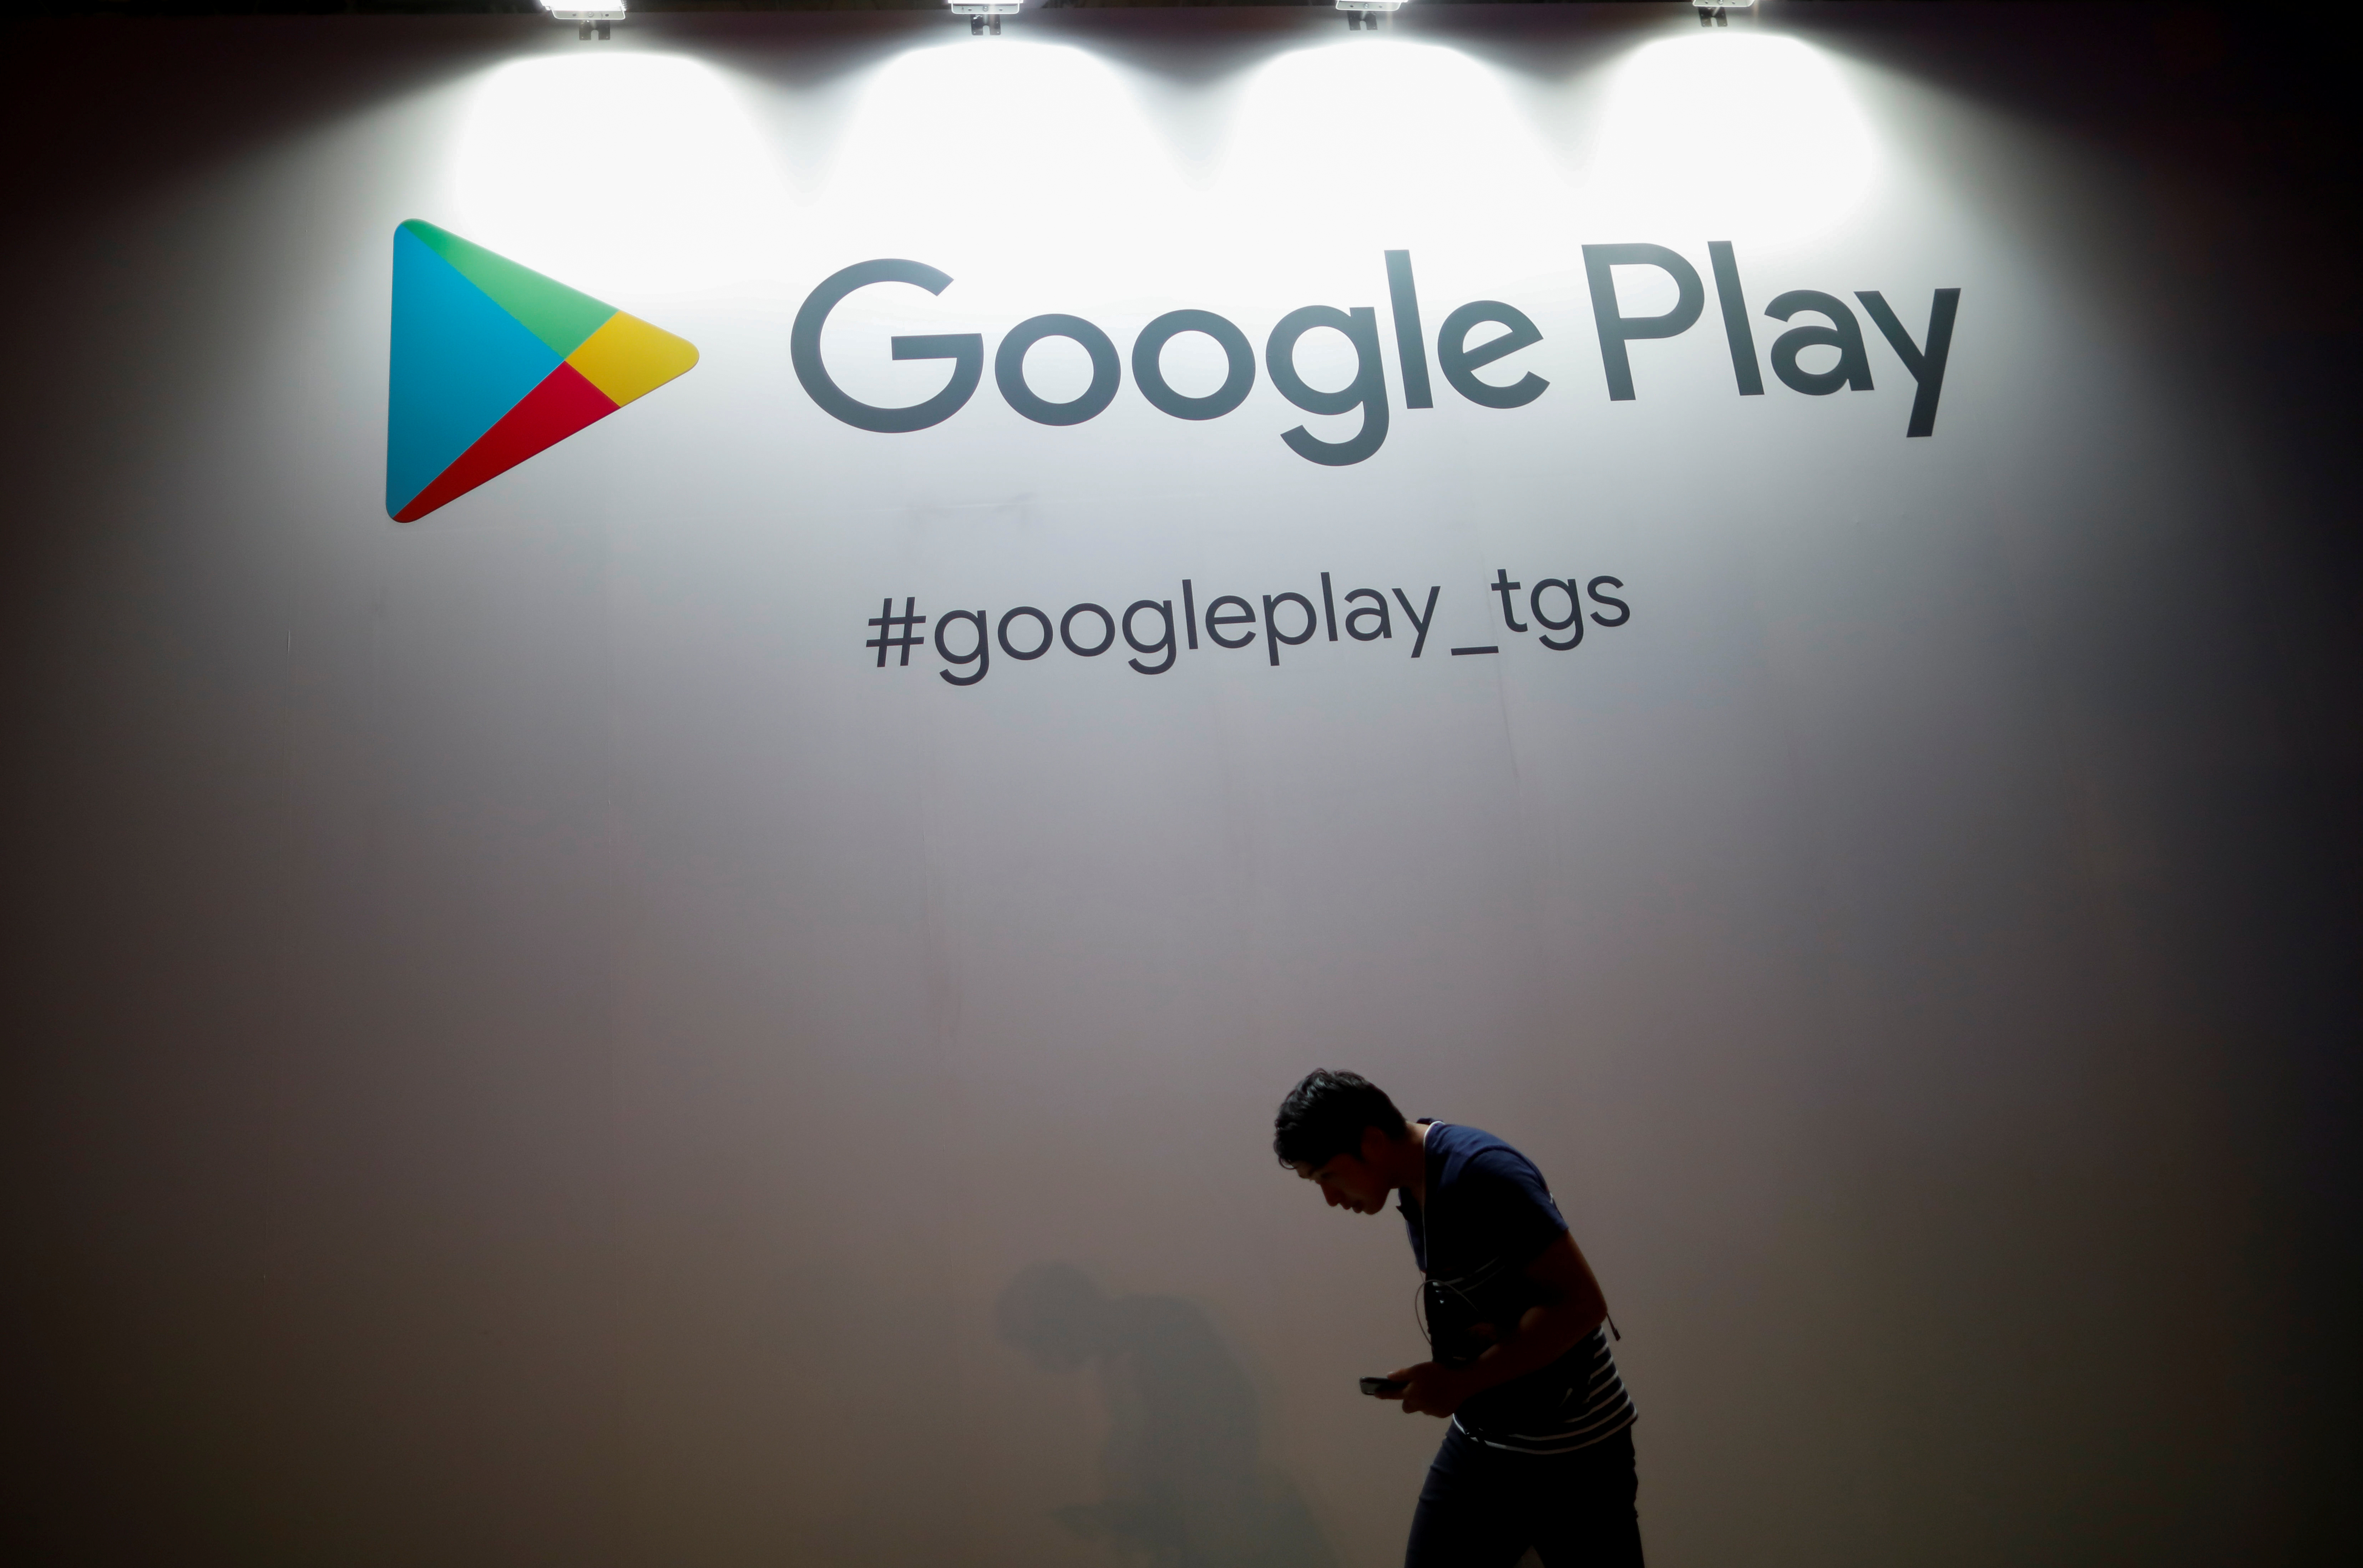 The logo of Google Play is displayed at Tokyo Game Show 2019 in Chiba, east of Tokyo, Japan, September 12, 2019. REUTERS/Issei Kato